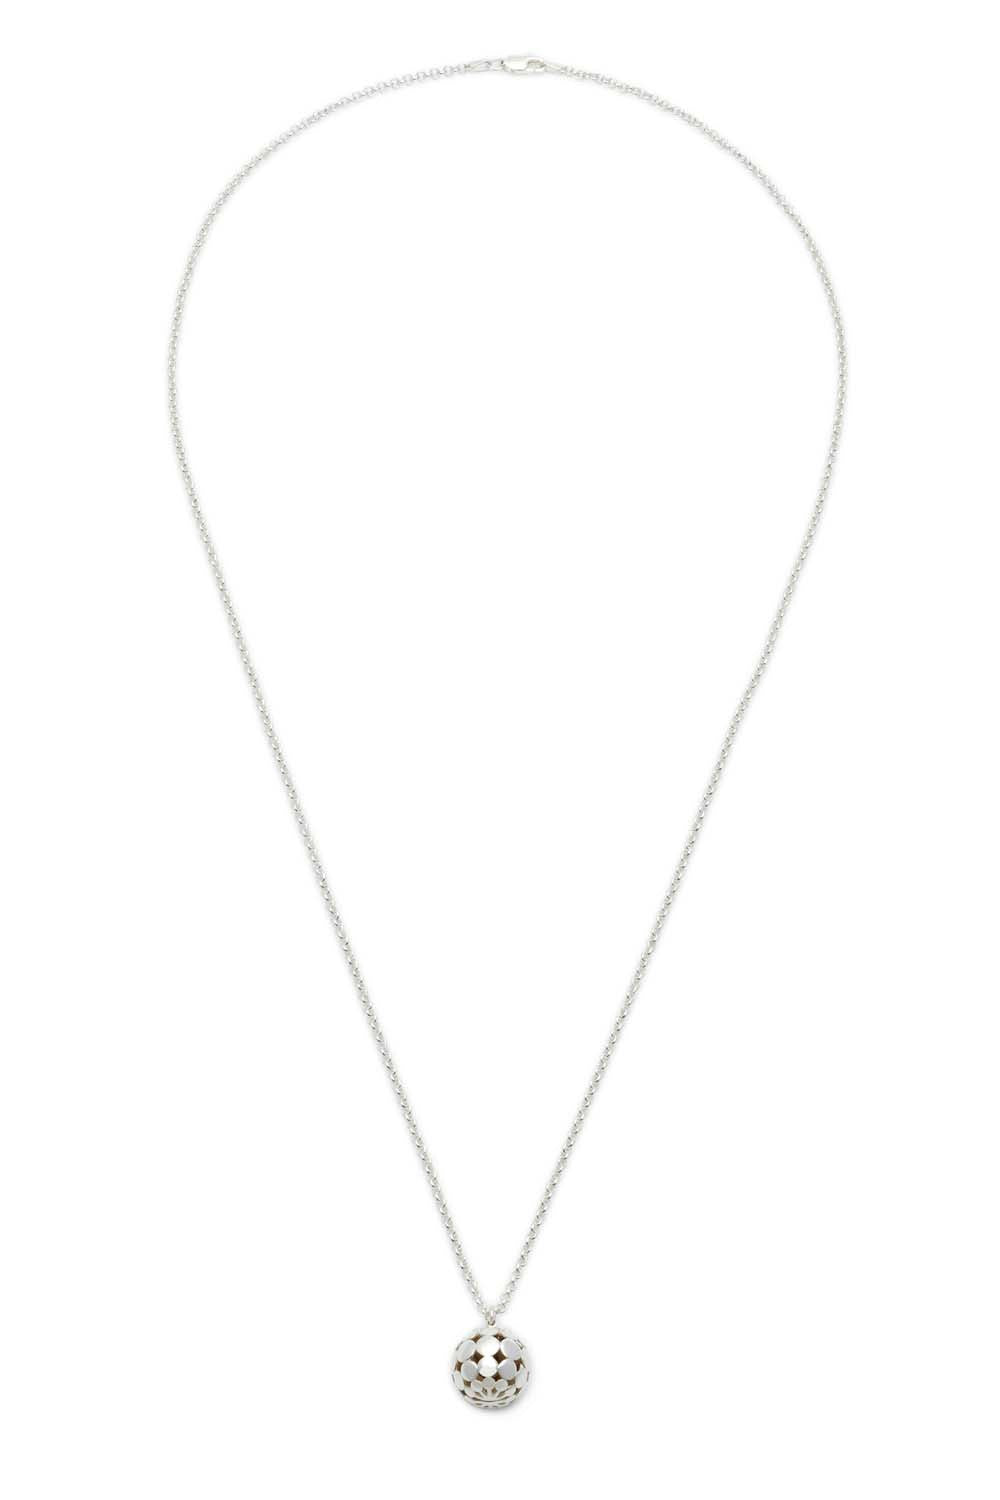 "30"" Hemisphere Necklace - Silver"